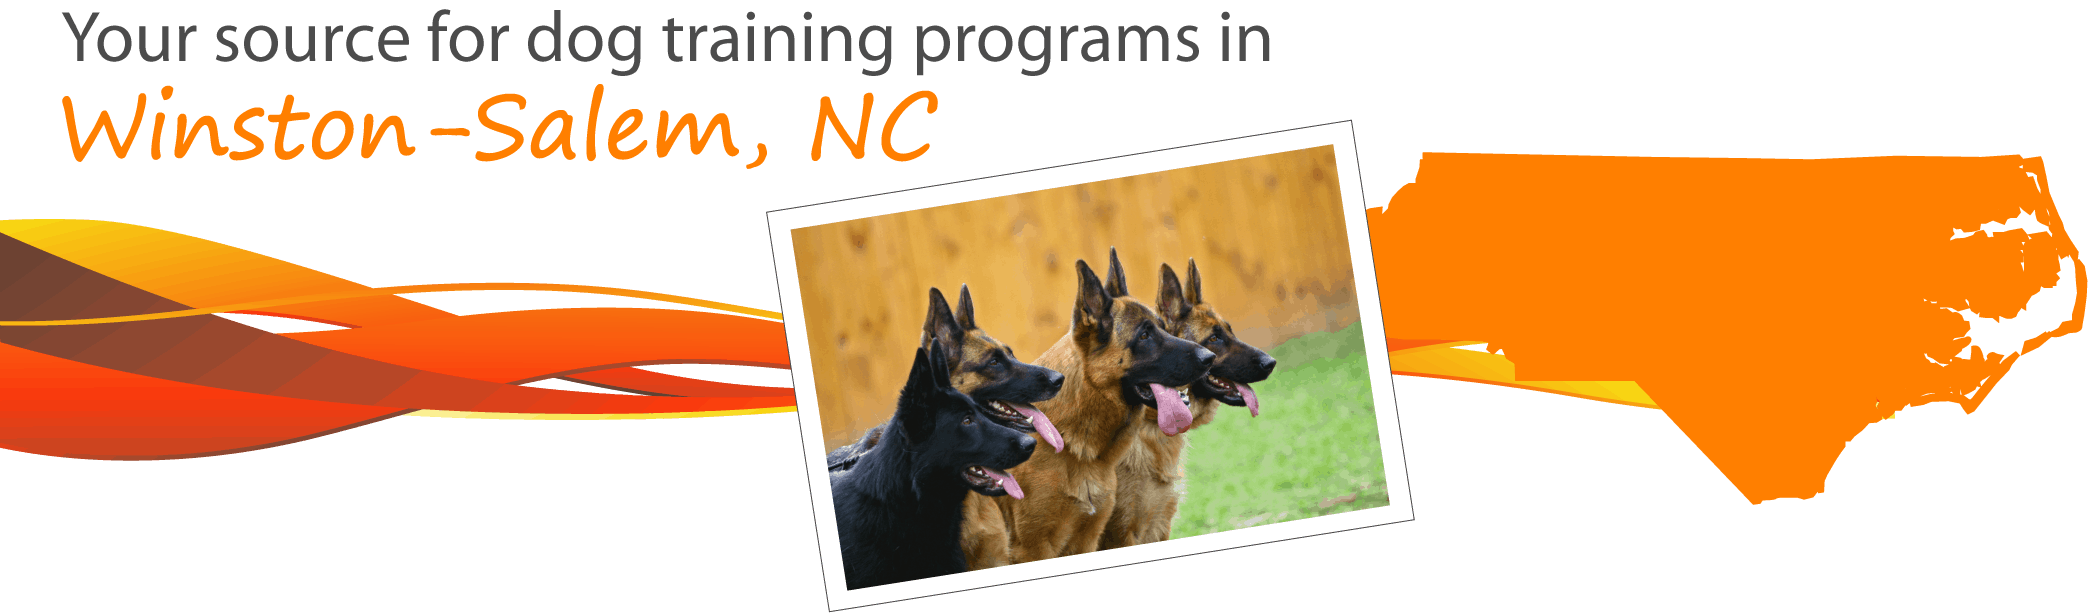 dog-training-winston-salem-